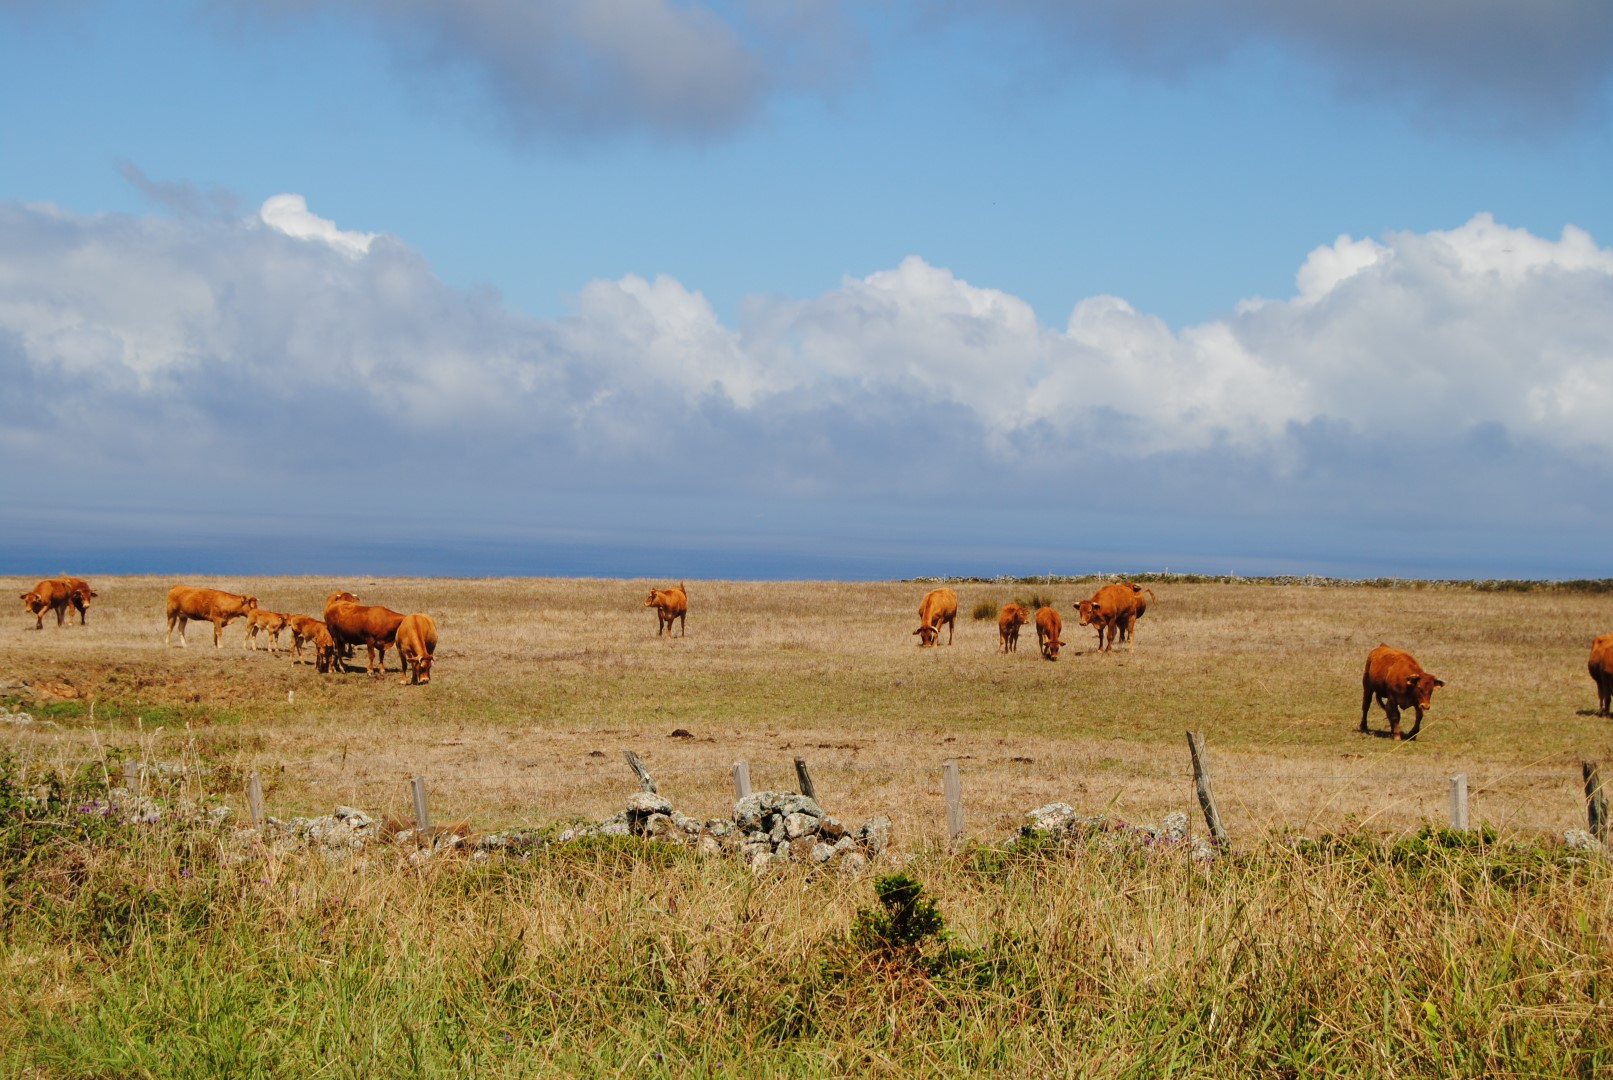 Pasture & Cows on the South side of Santa Maria island